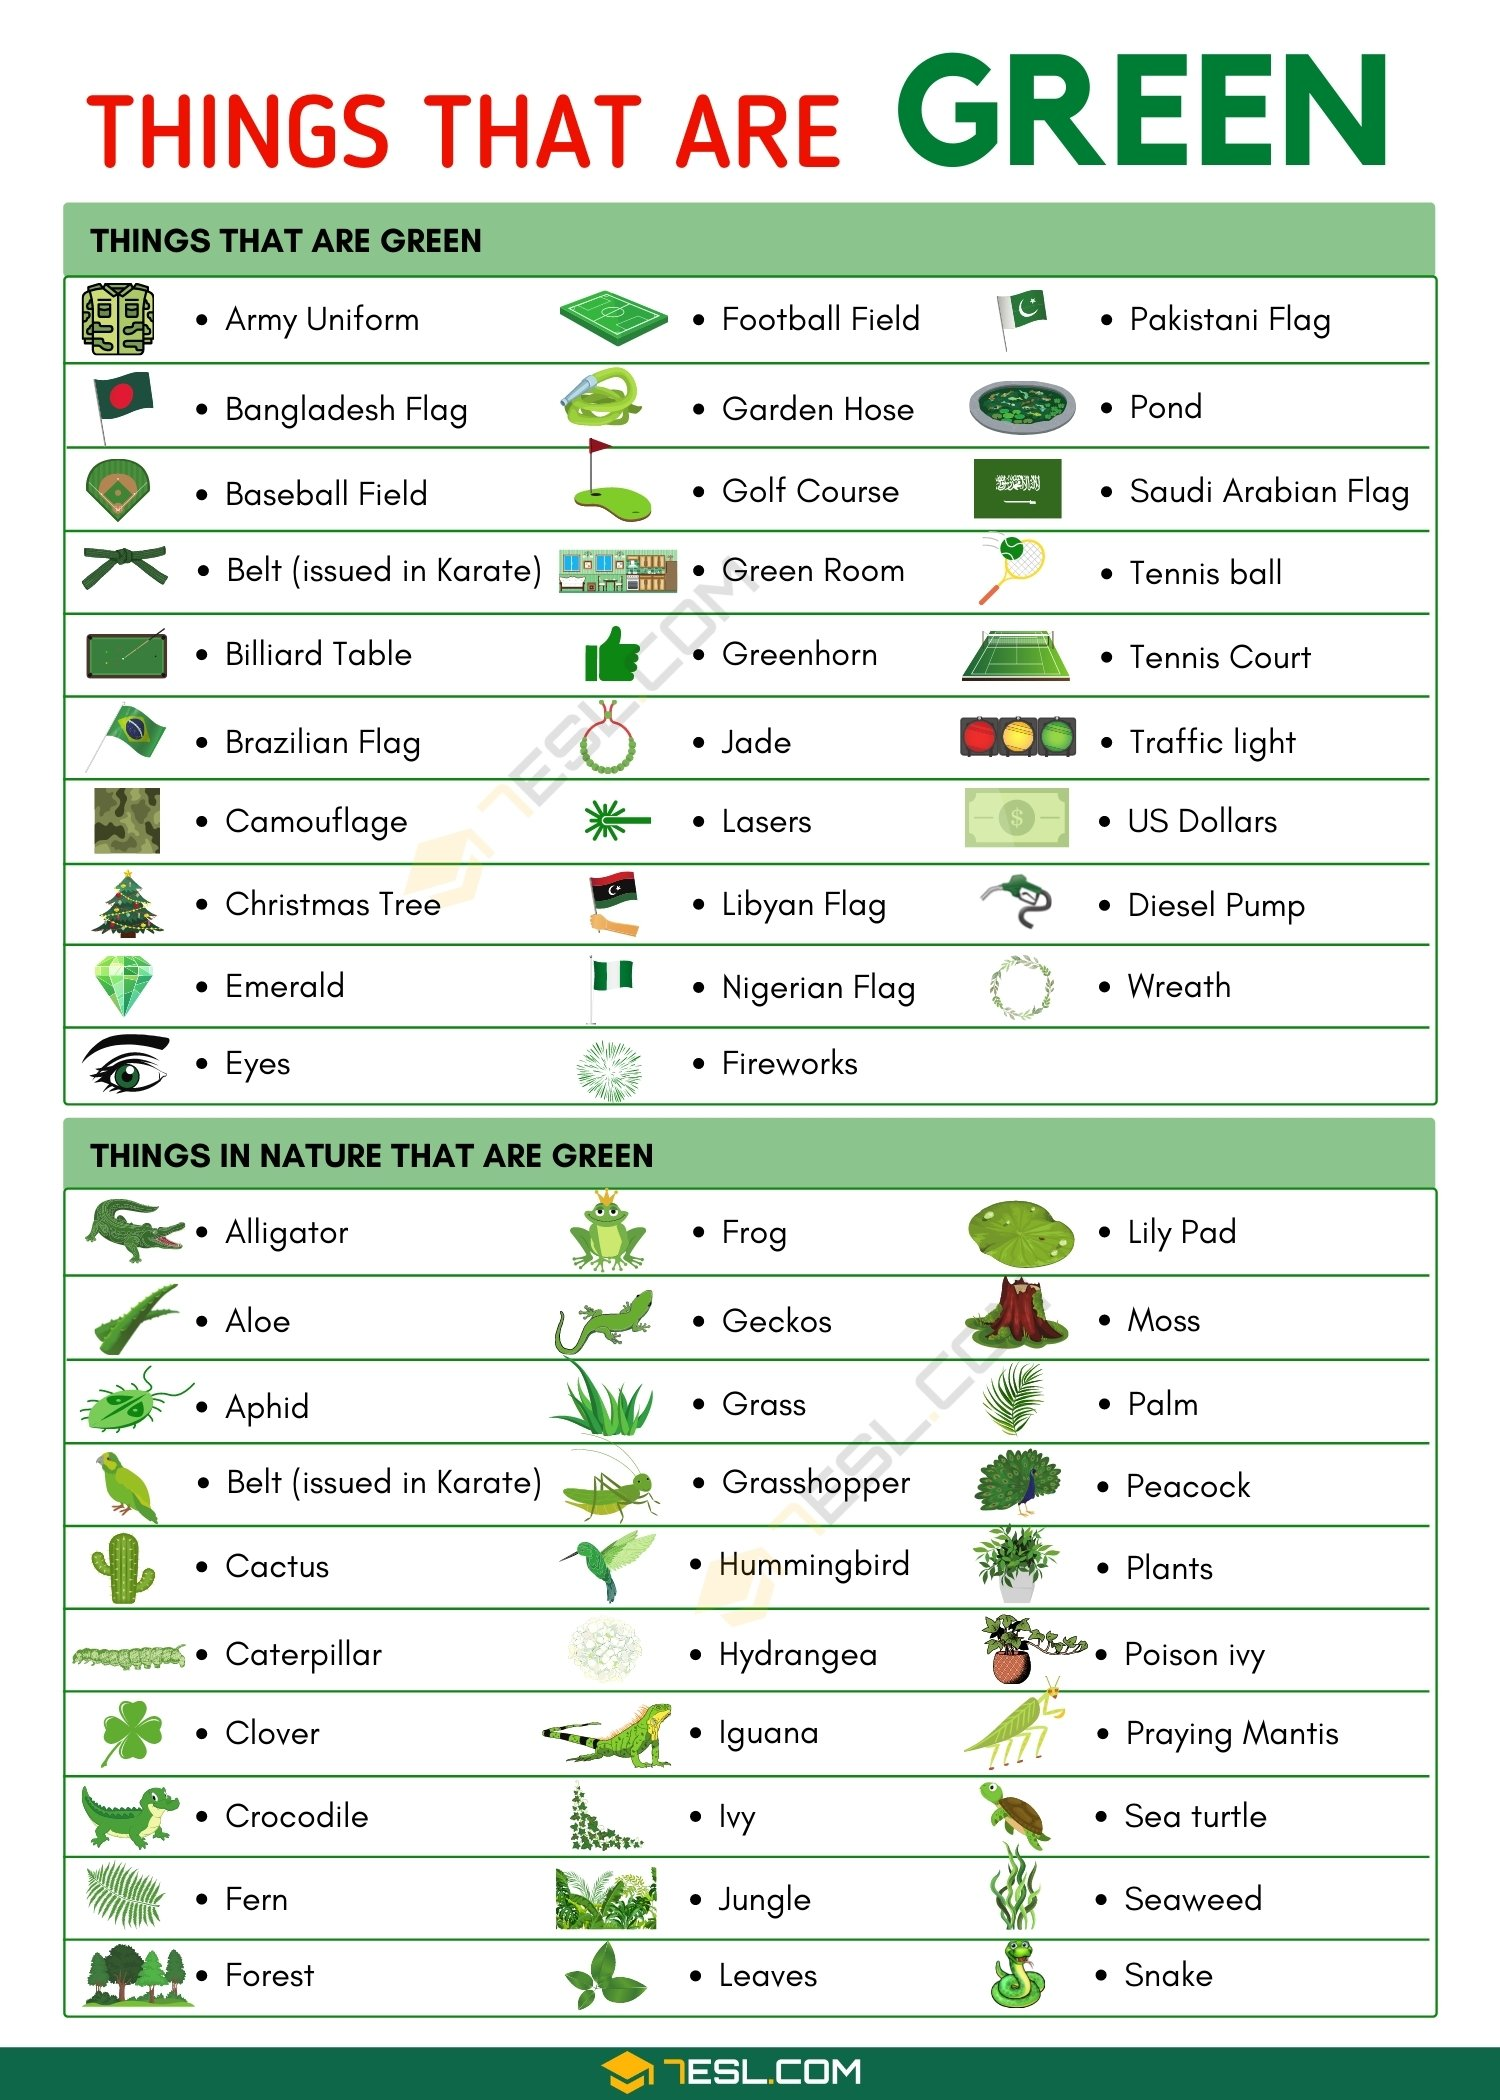 Things that are Green: List of 160+ Things that are Green